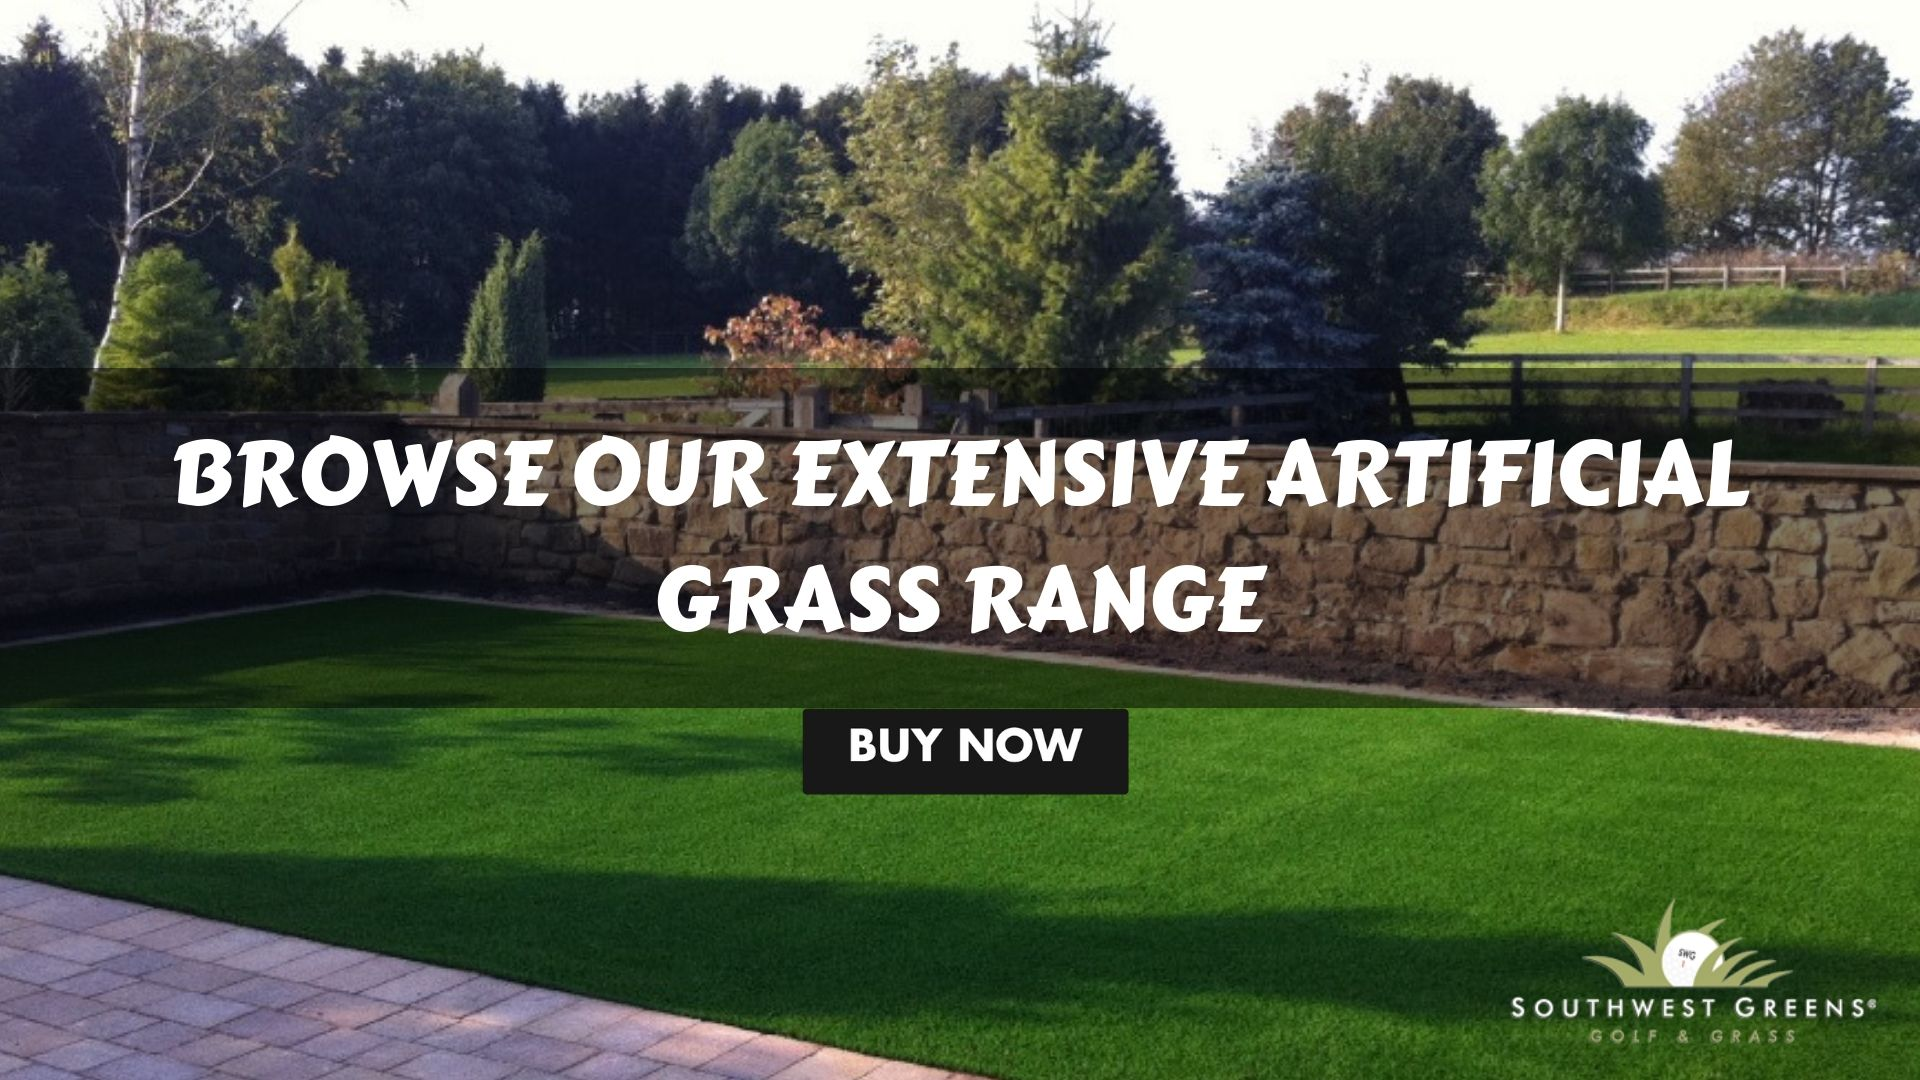 Are You Looking To Install Artificial Turf On Your Property At